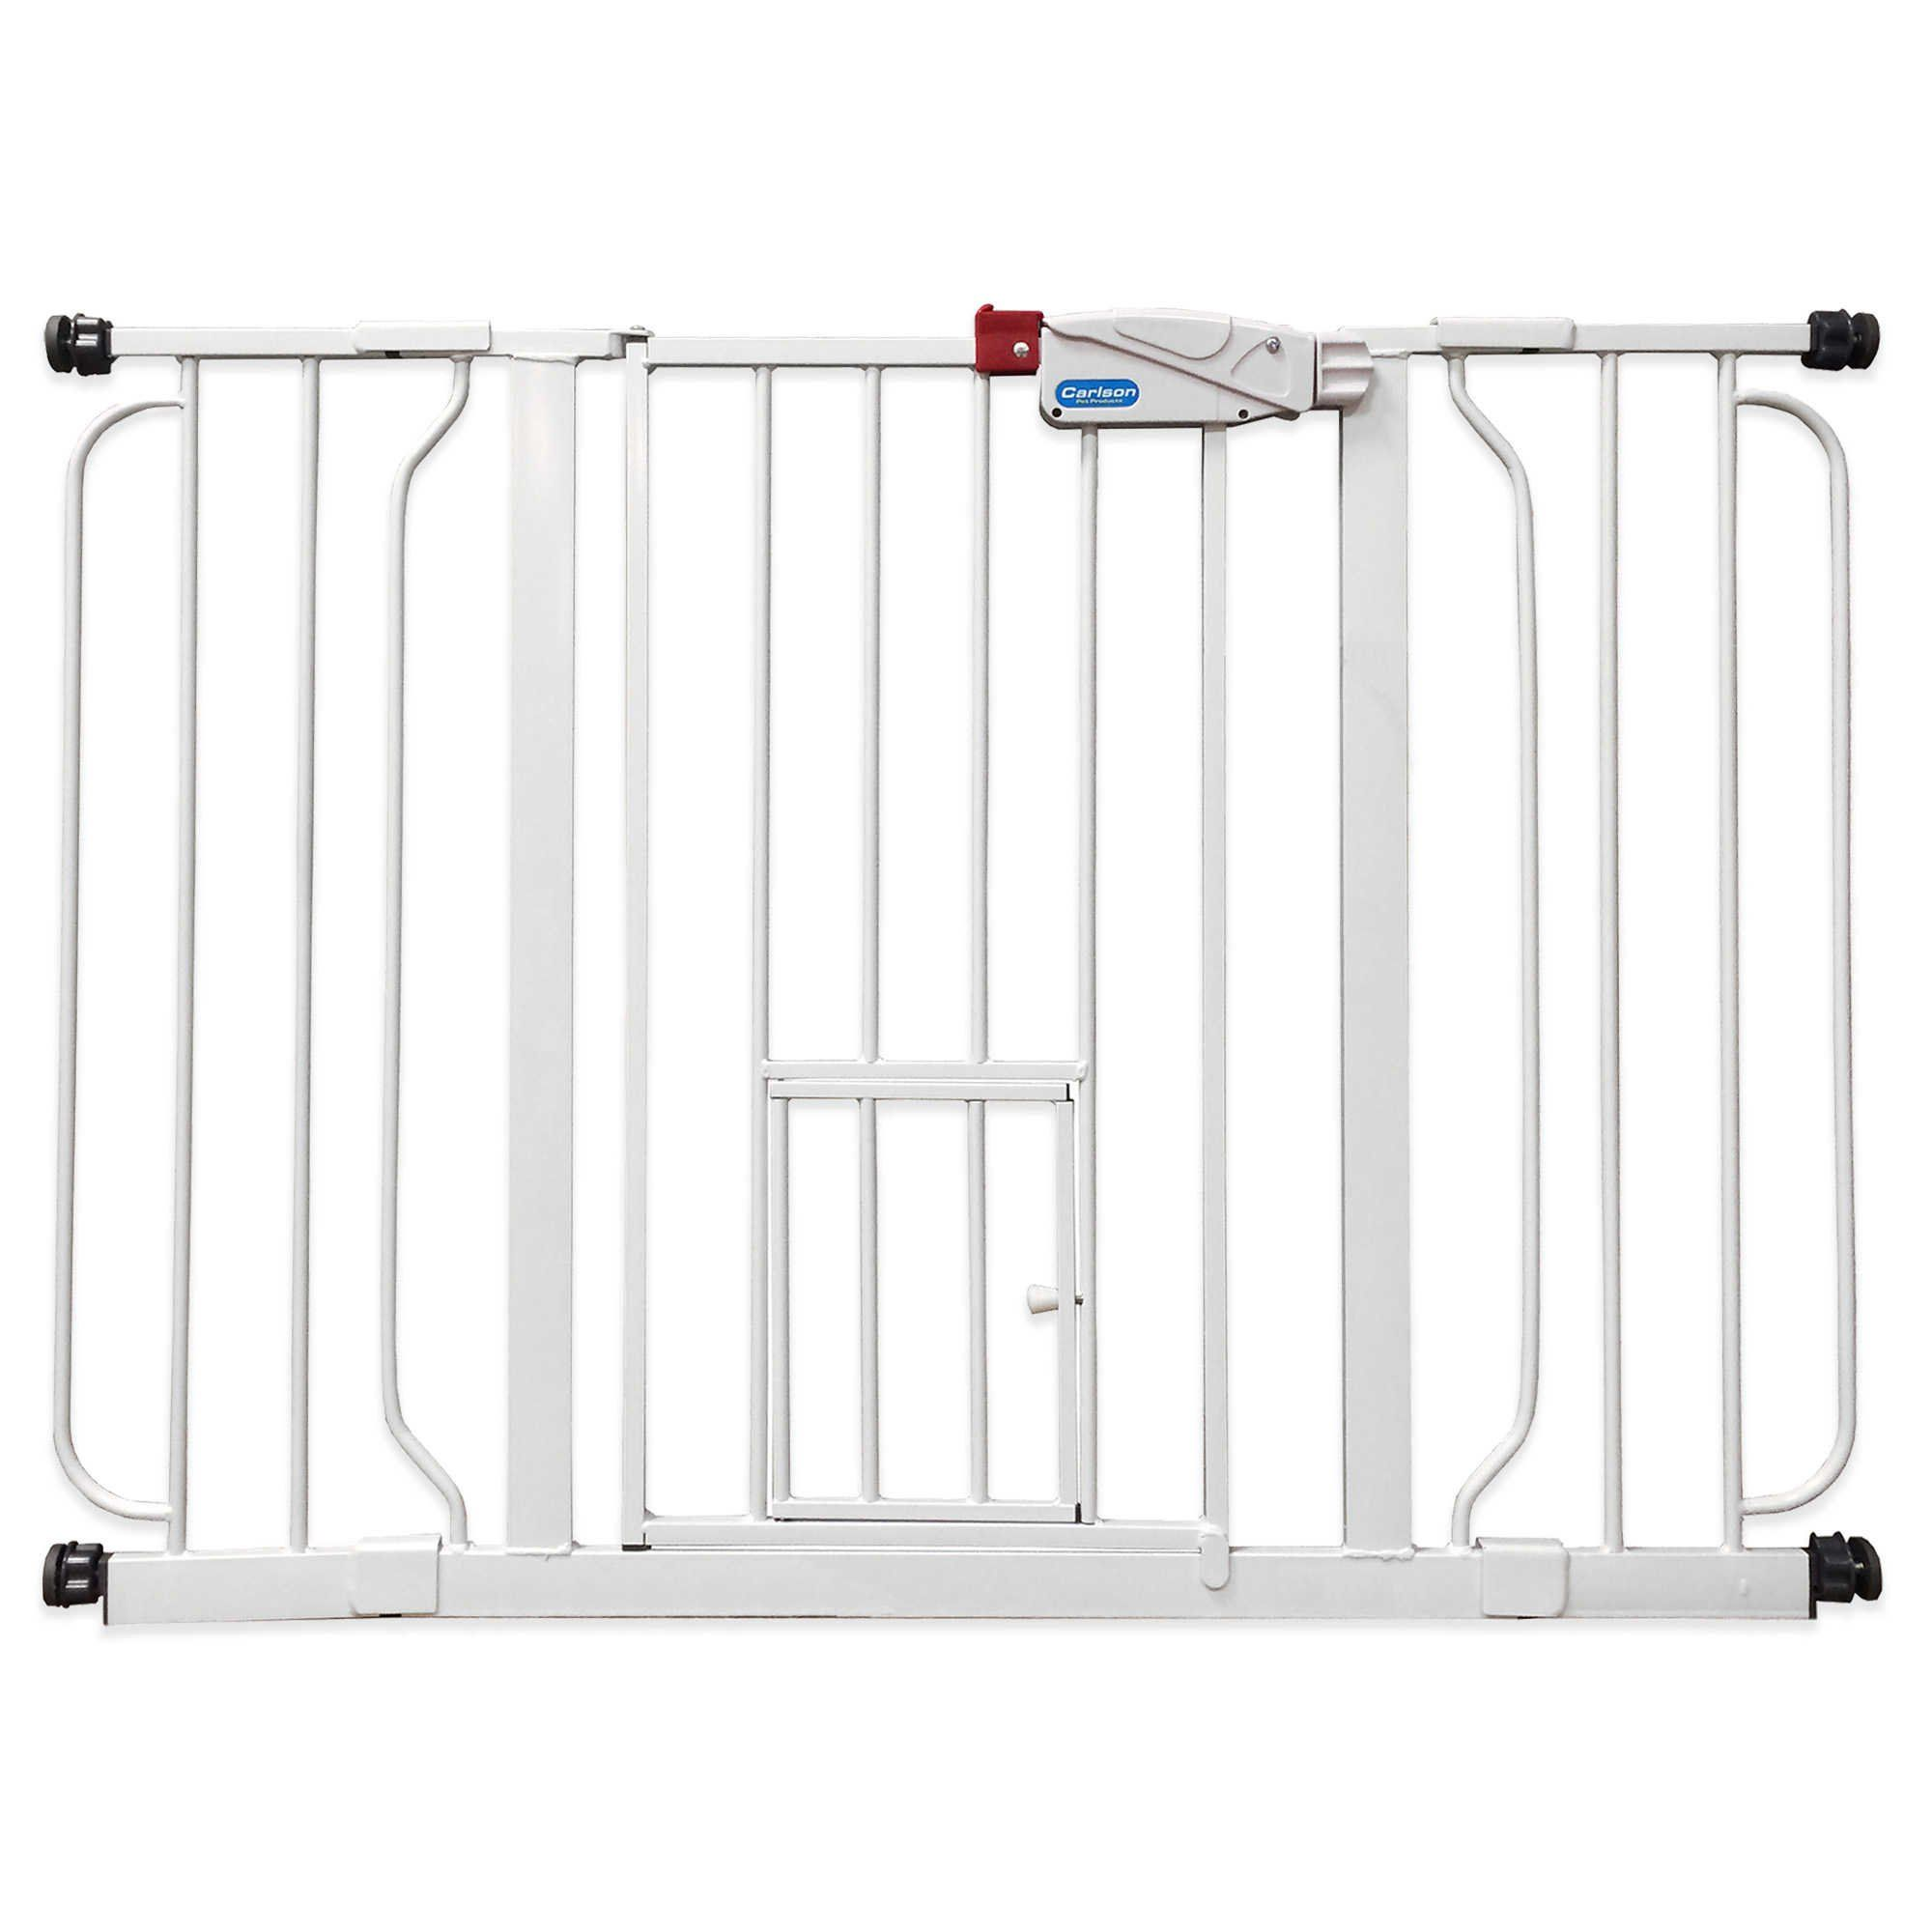 "Carlson Extra-Wide Walk-Through Gate in White. This Extra-Wide Walk-Through Pet Door Gate limits large animals from roaming freely through your home while the built-in 10"" H x 7"" W pet door lets cats and other small animals through. Pass-through gate lock can be opened with one hand. Pressure or hardware mountable. 90% steel / 10% plastic. Wipe clean with a damp cloth."